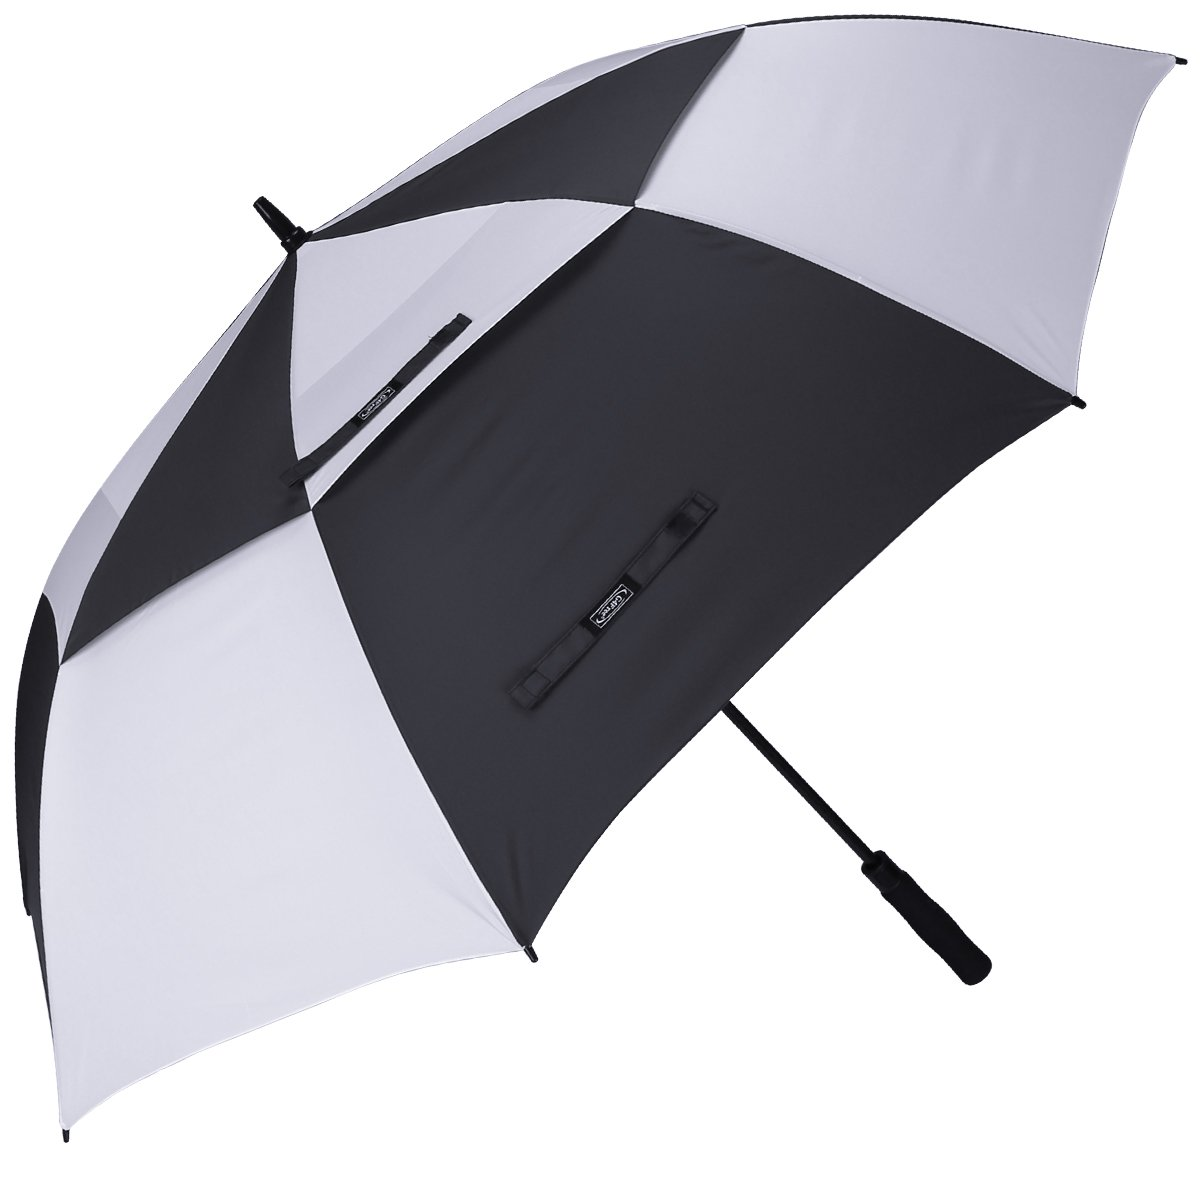 G4Free 62 Inch Automatic Open Golf Umbrella Extra Large Oversize Double Canopy Vented Windproof Waterproof Stick Umbrellas(Black/White)